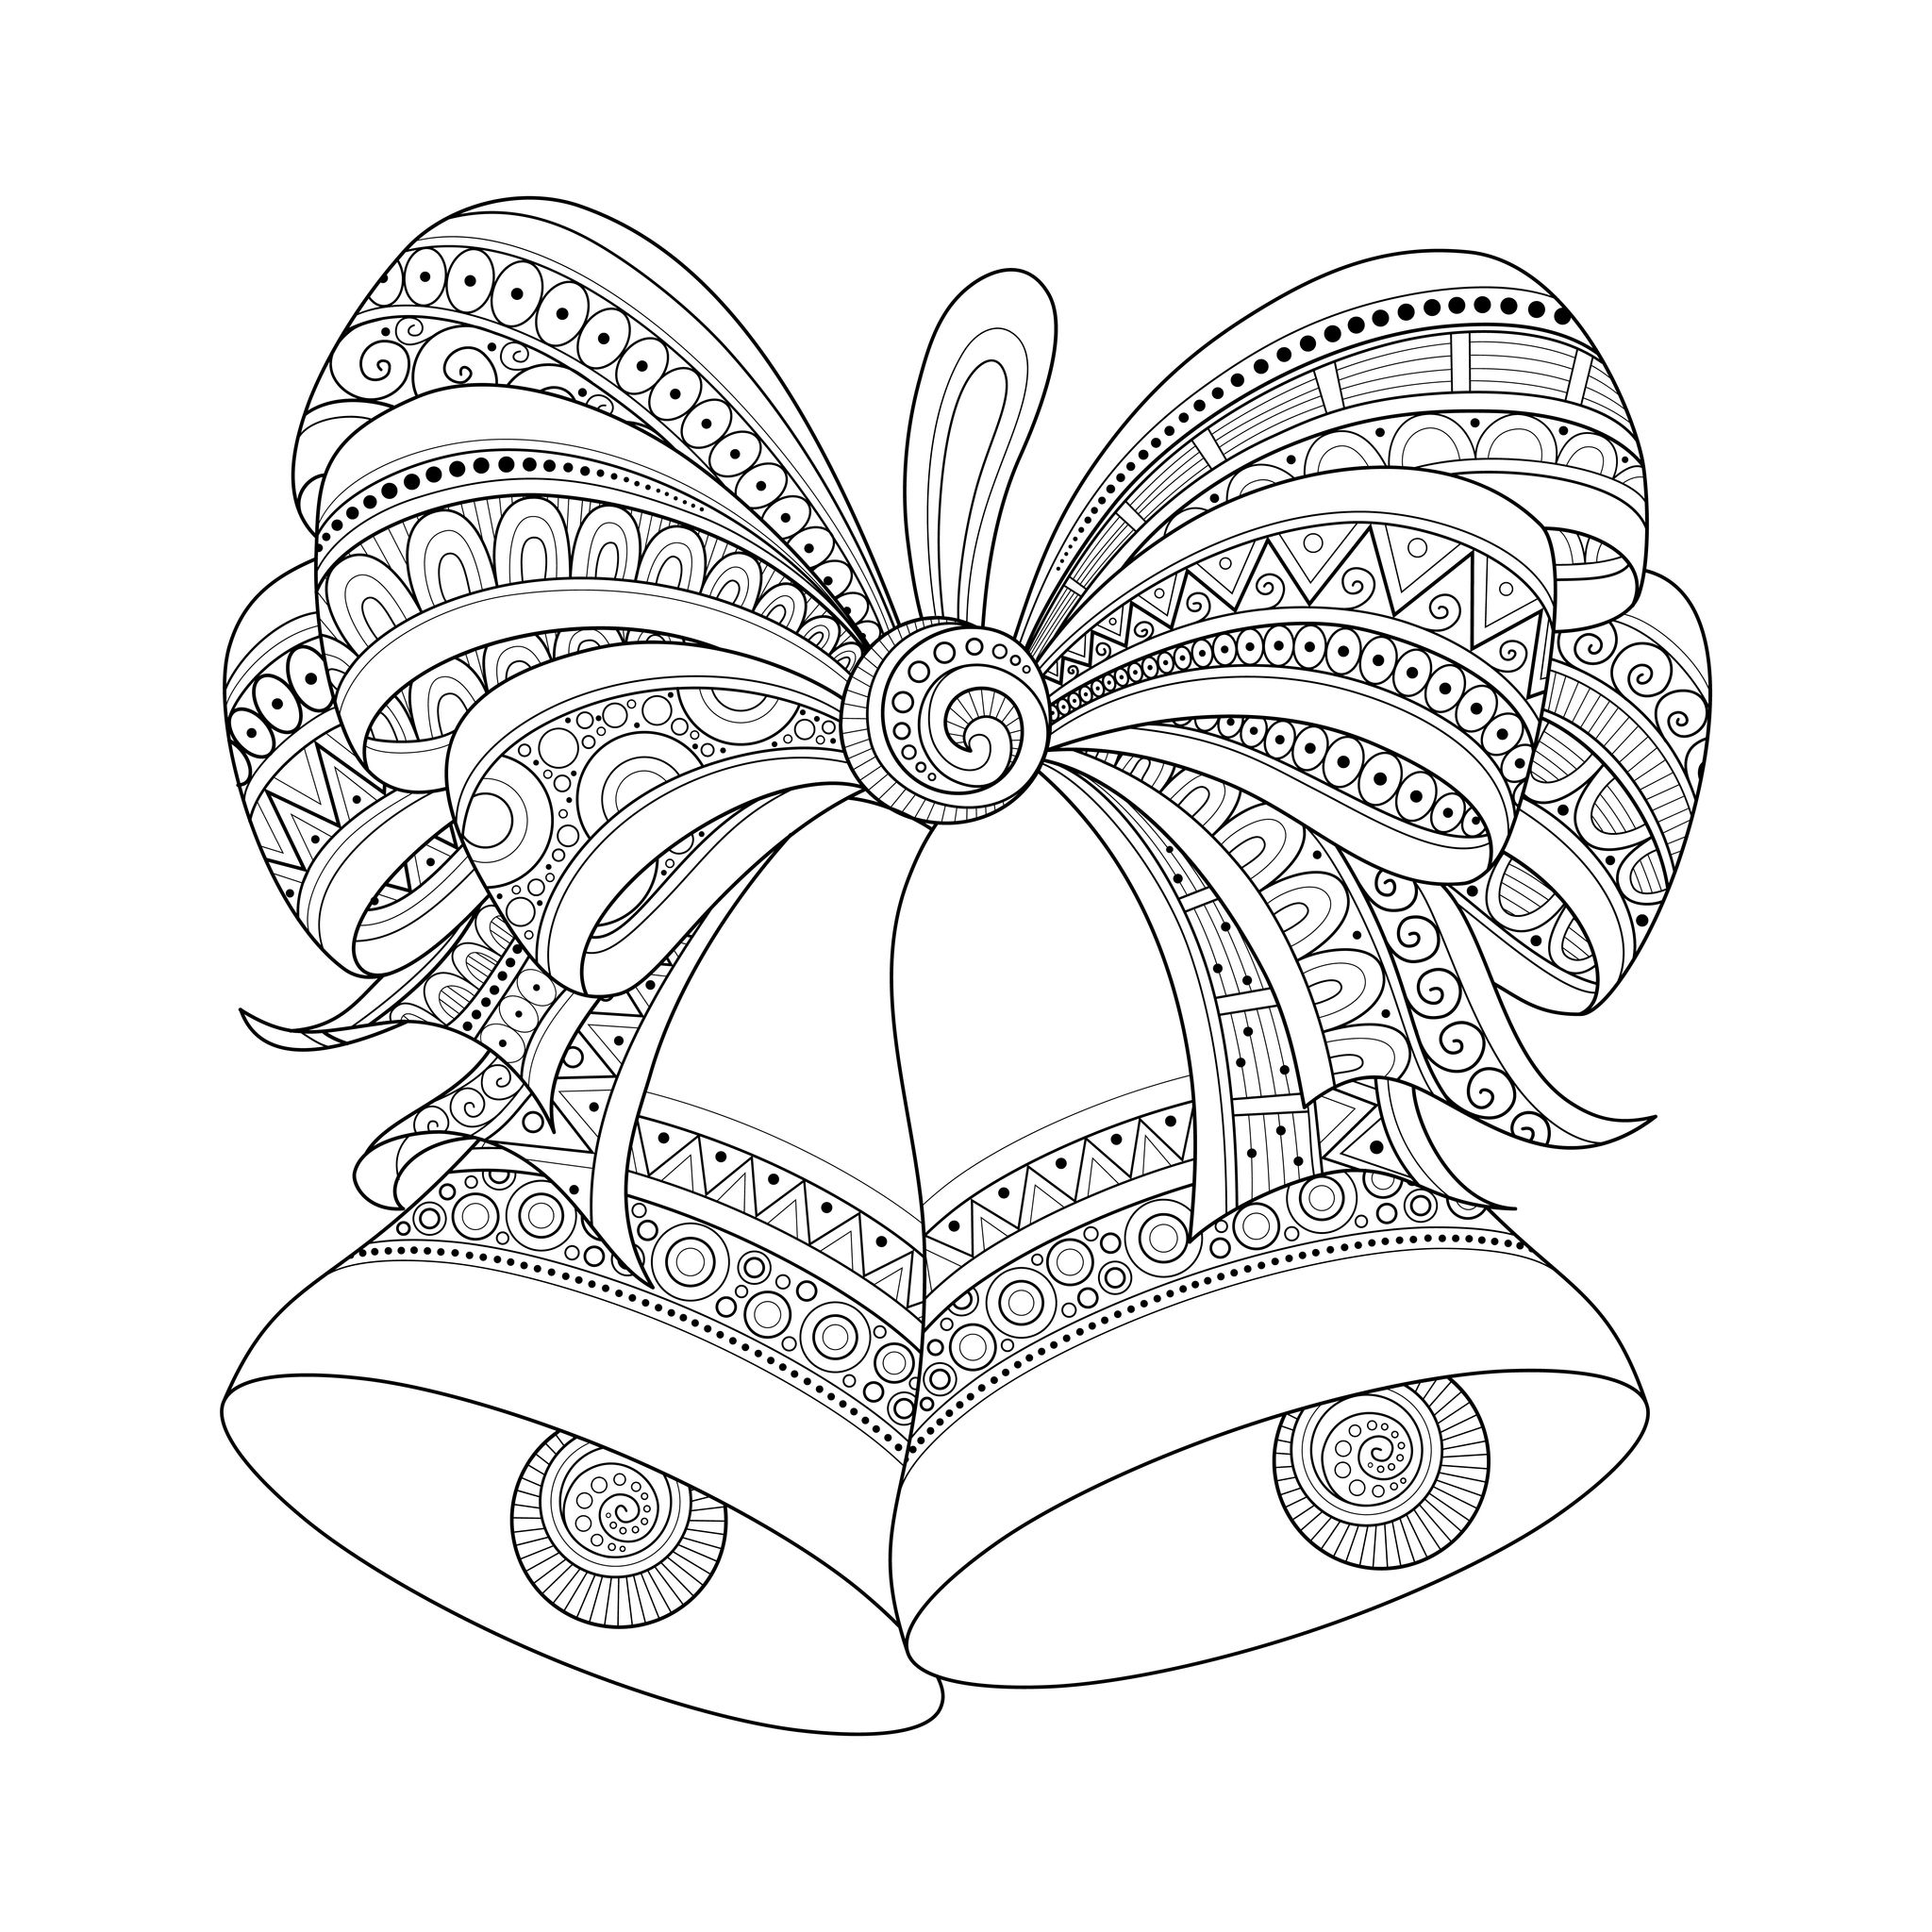 Drawn christmas ornaments coloring page Christmas for Christmas adult coloring